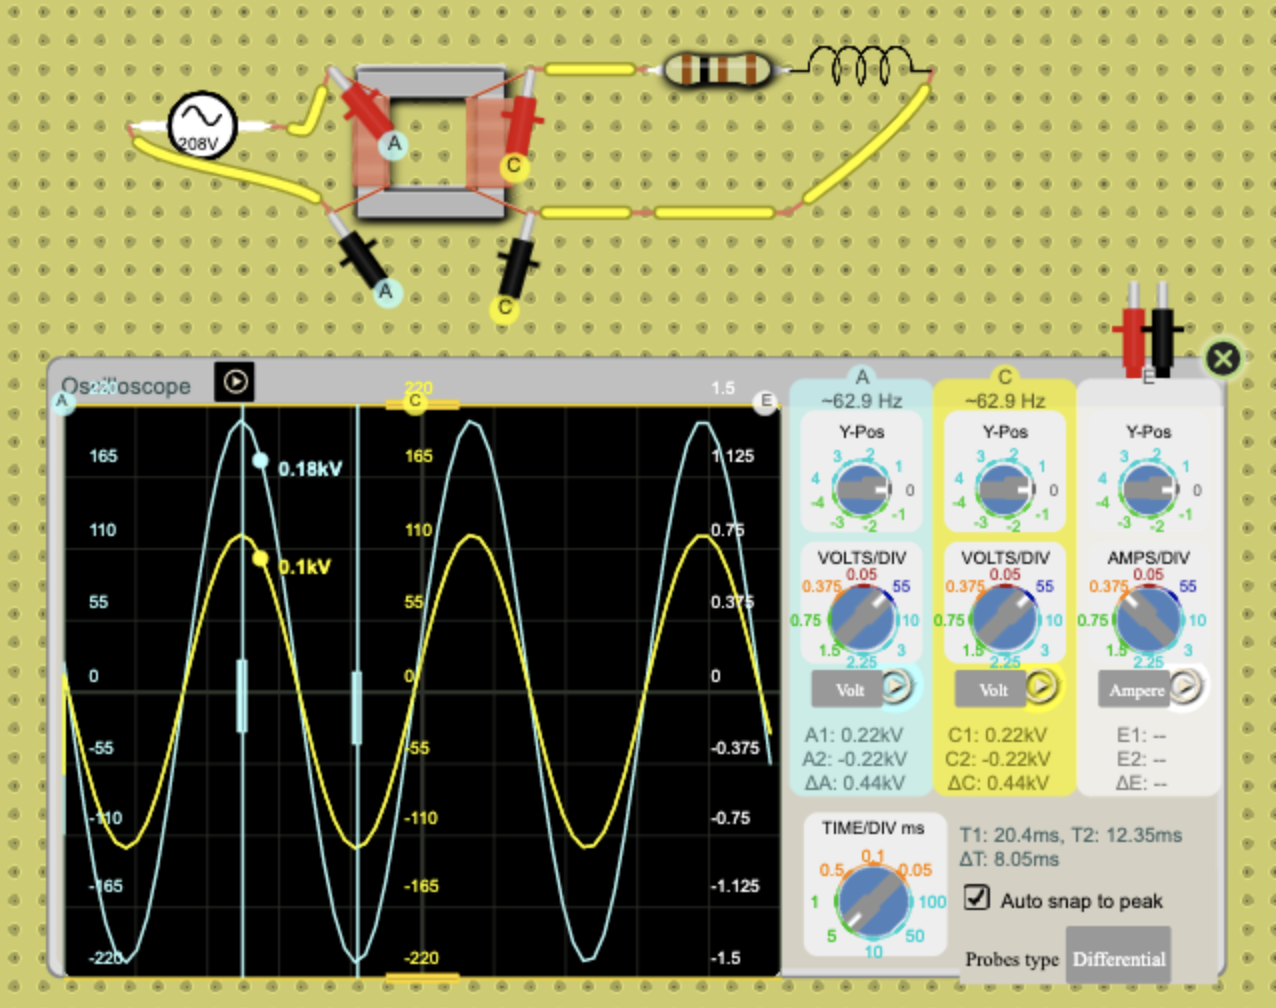 Oscilloscope, measure time delta between two peaks